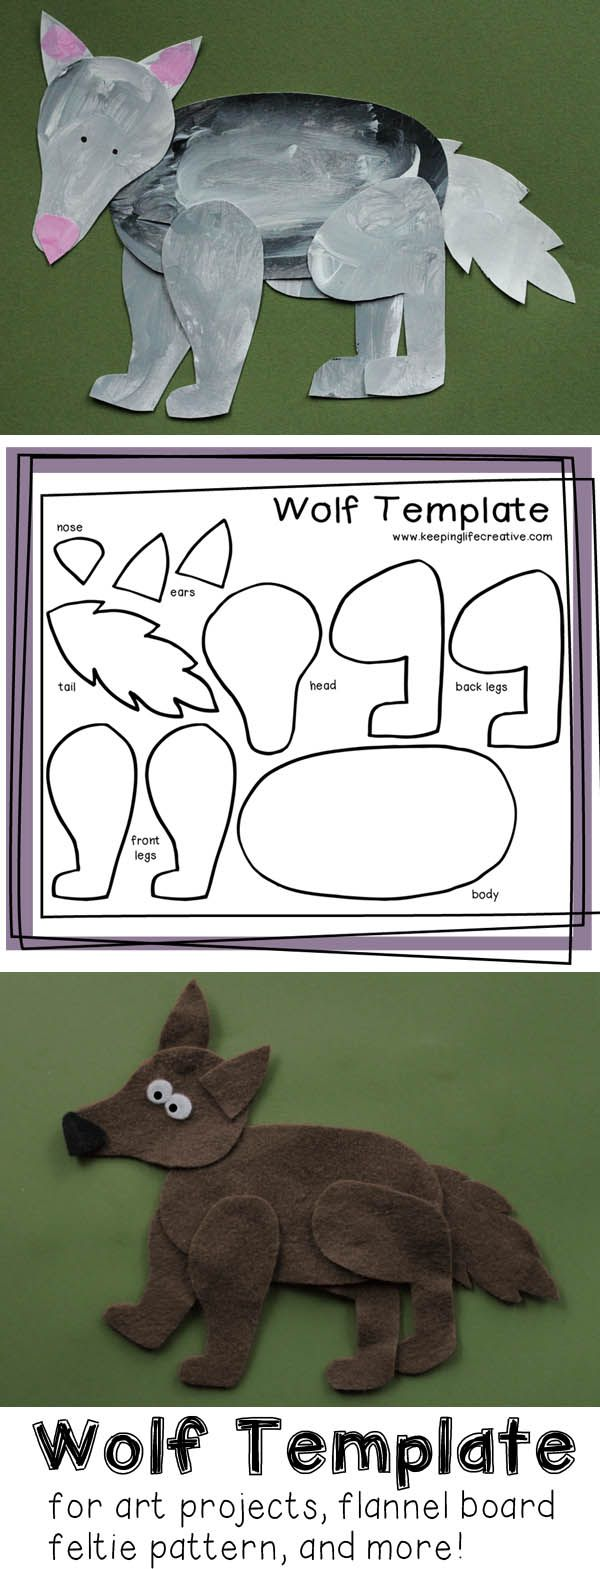 Crafts for Kids | FREE printable wolf template for art projects, flannel or bulletin board pattern, and much more!